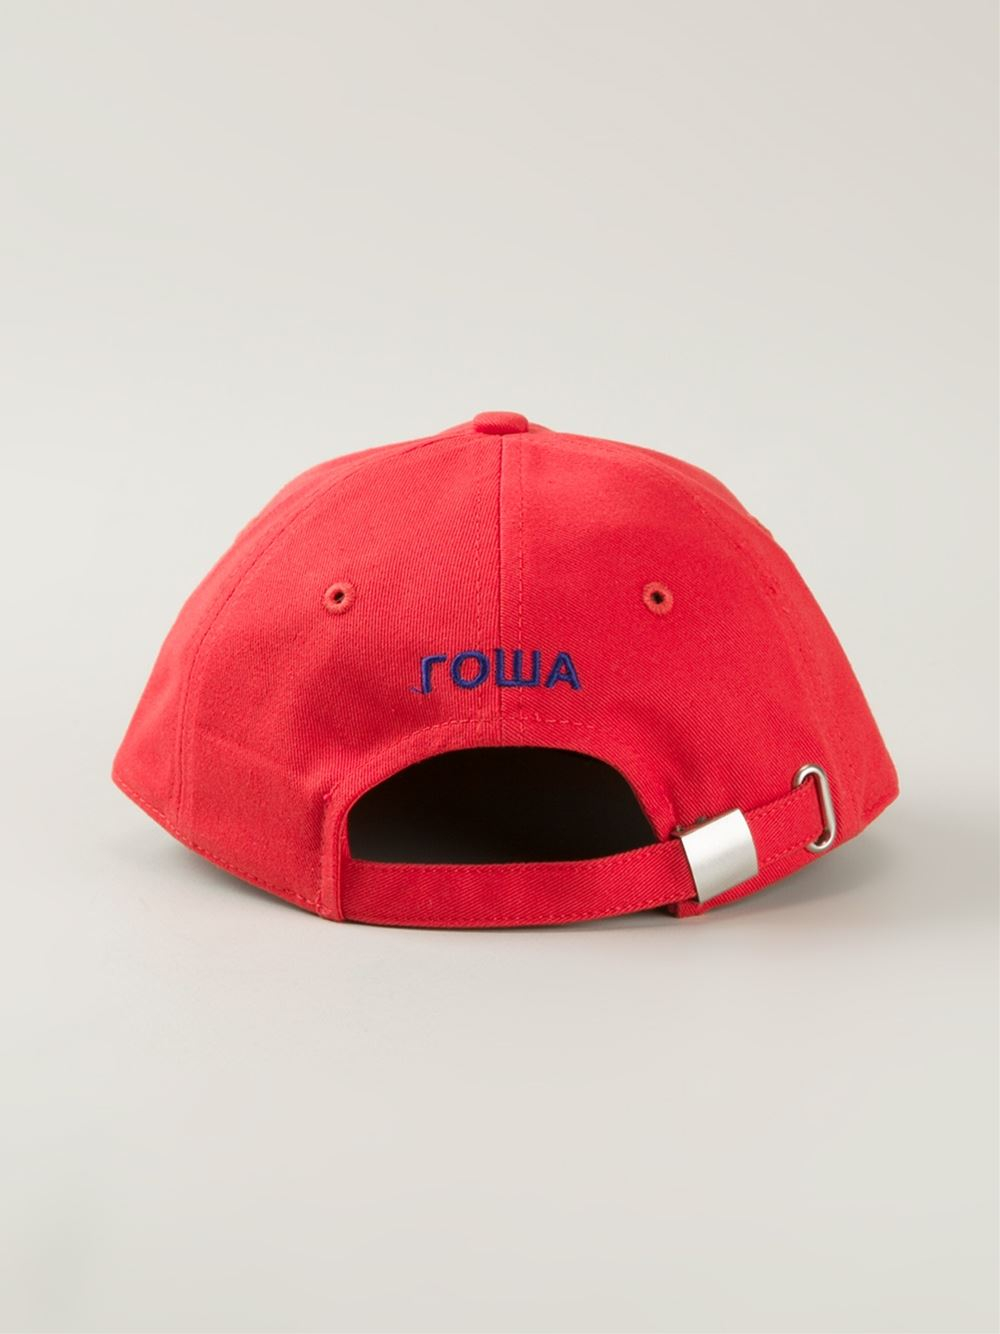 Lyst - Gosha Rubchinskiy Embroidered Detail Cap in Red for Men c947a5ad53e